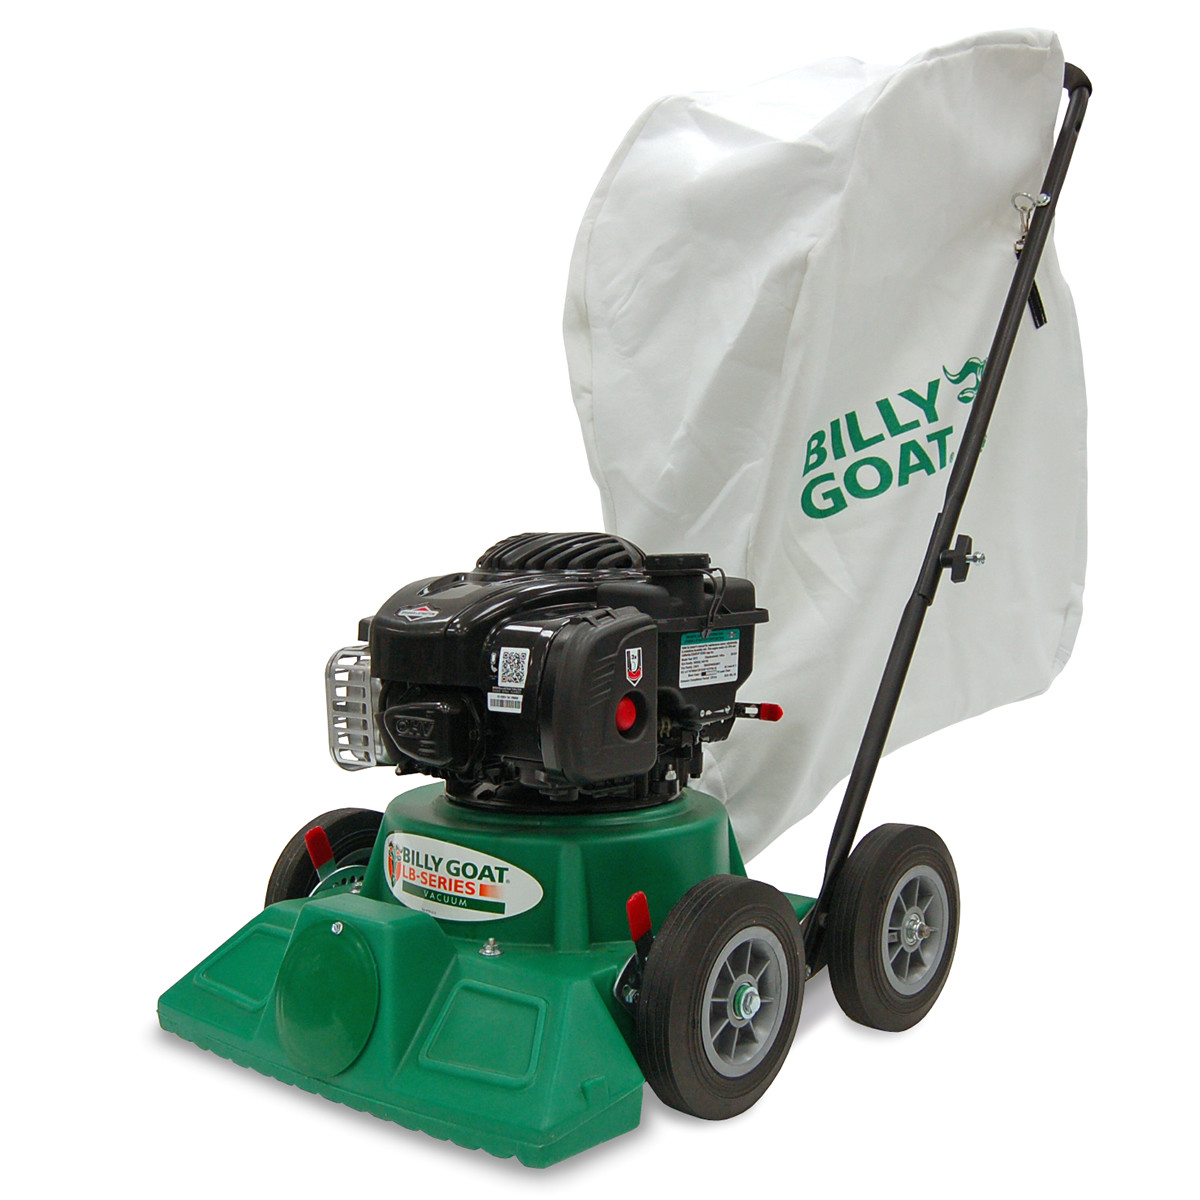 billygoat clean up your world debris vacuums force blowers overseeders aerators brush mowers